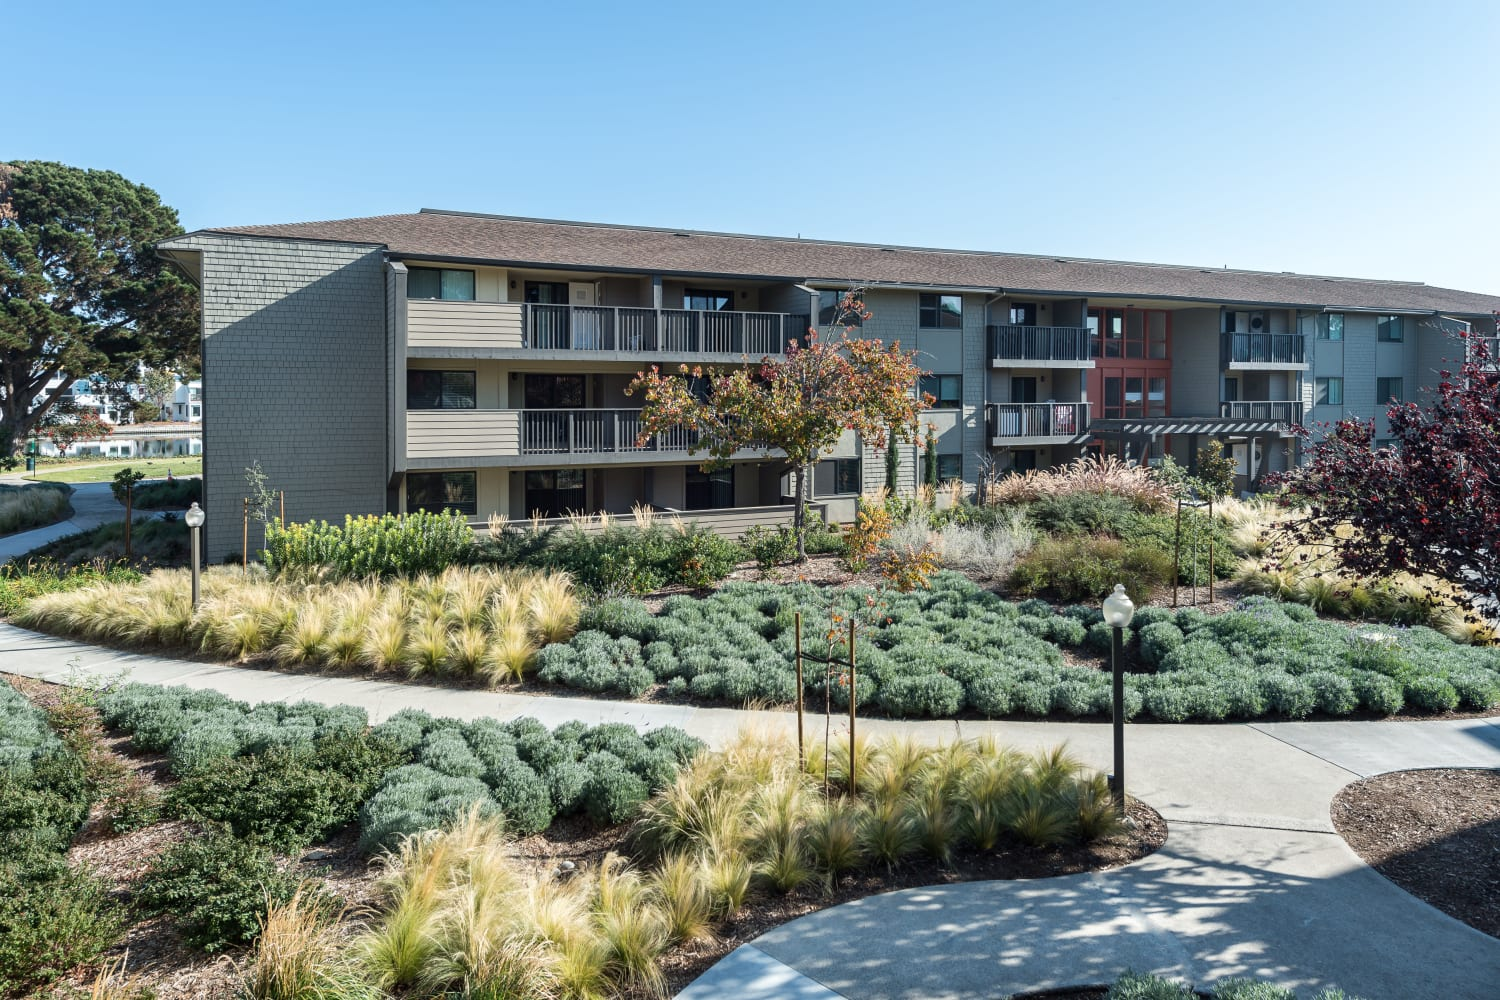 Well-maintained grounds at Harbor Cove Apartments in Foster City, California